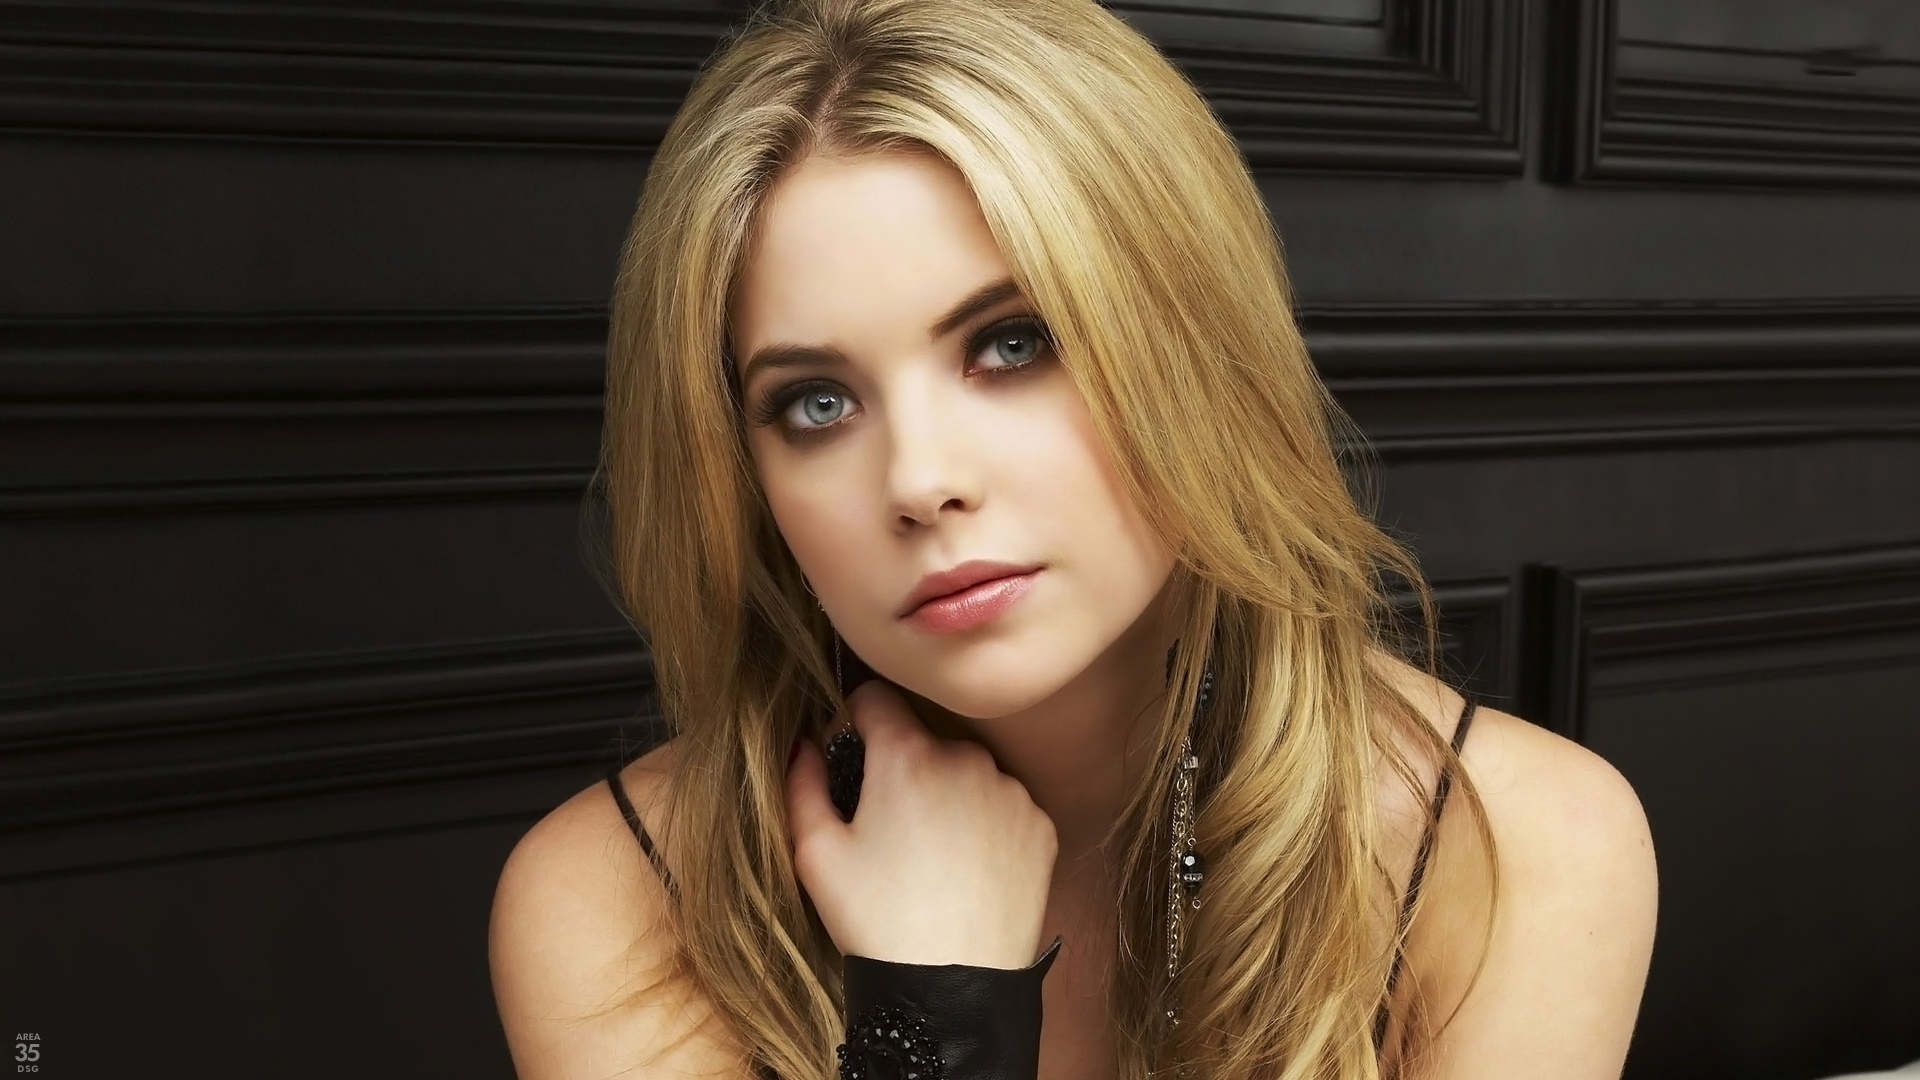 Cute Ashley Benson Wallpaper Hd Wallpapers 1920x1080px